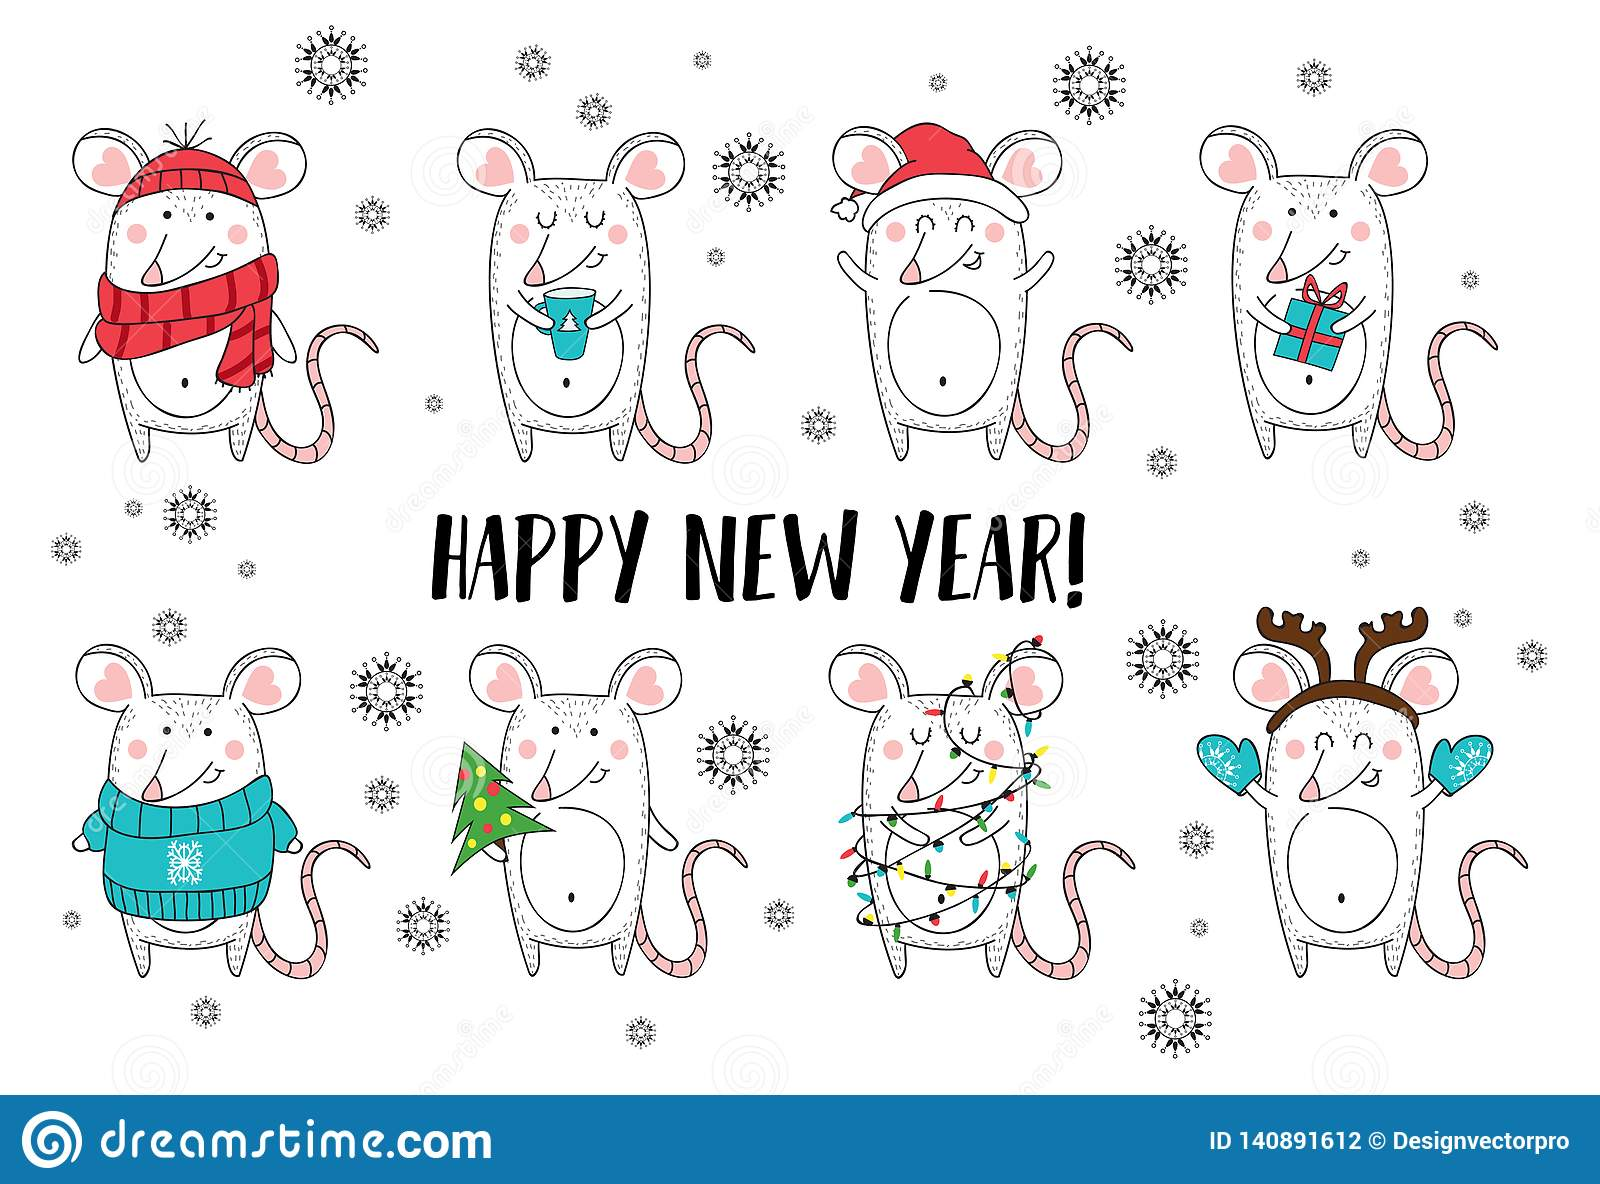 New year and Christmas rat characters.Christmas animals simple illustration for greeting cards, calendars, prints etc. Hand draw